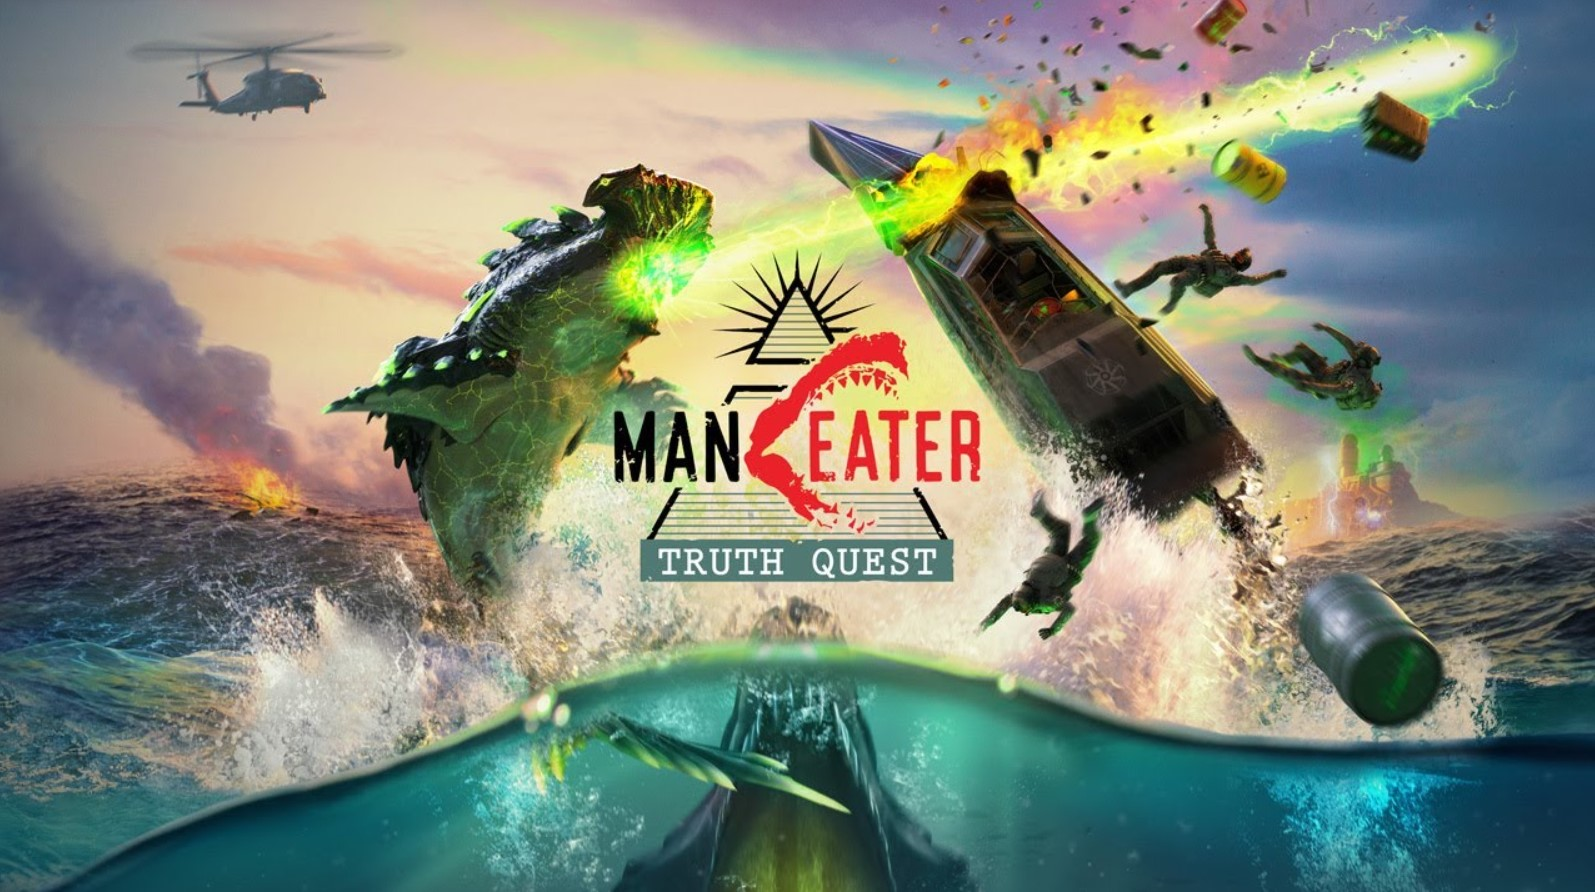 Maneater Truth Quest Download PC Game Full Version Free Download